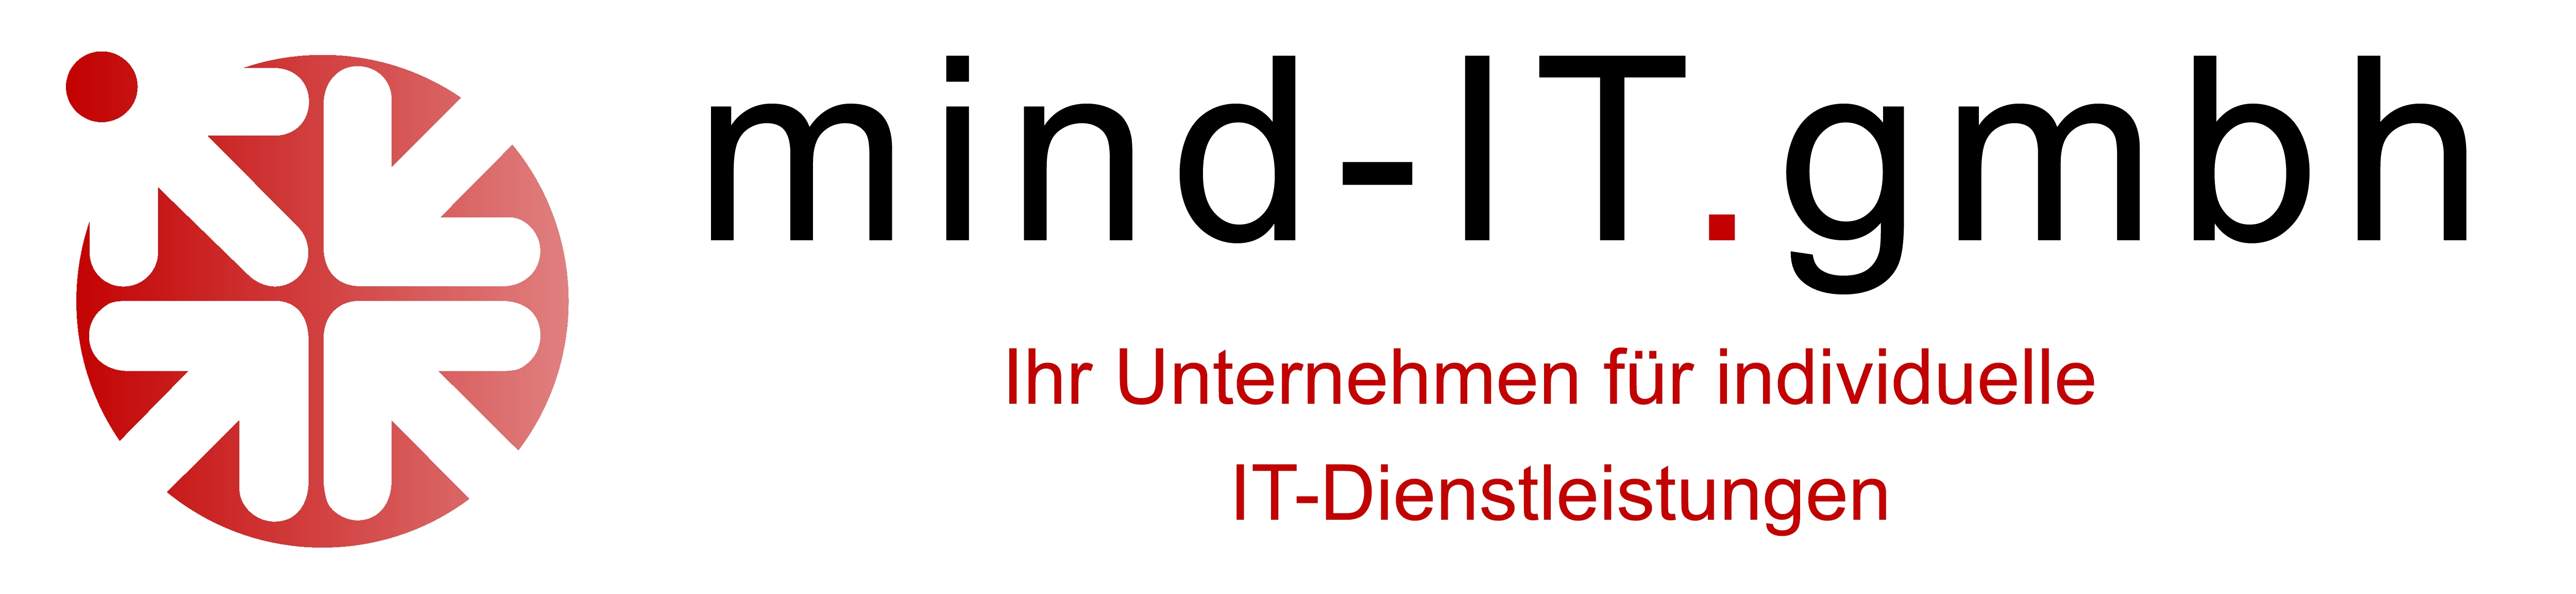 mind-IT_FirmenlogoJPG3